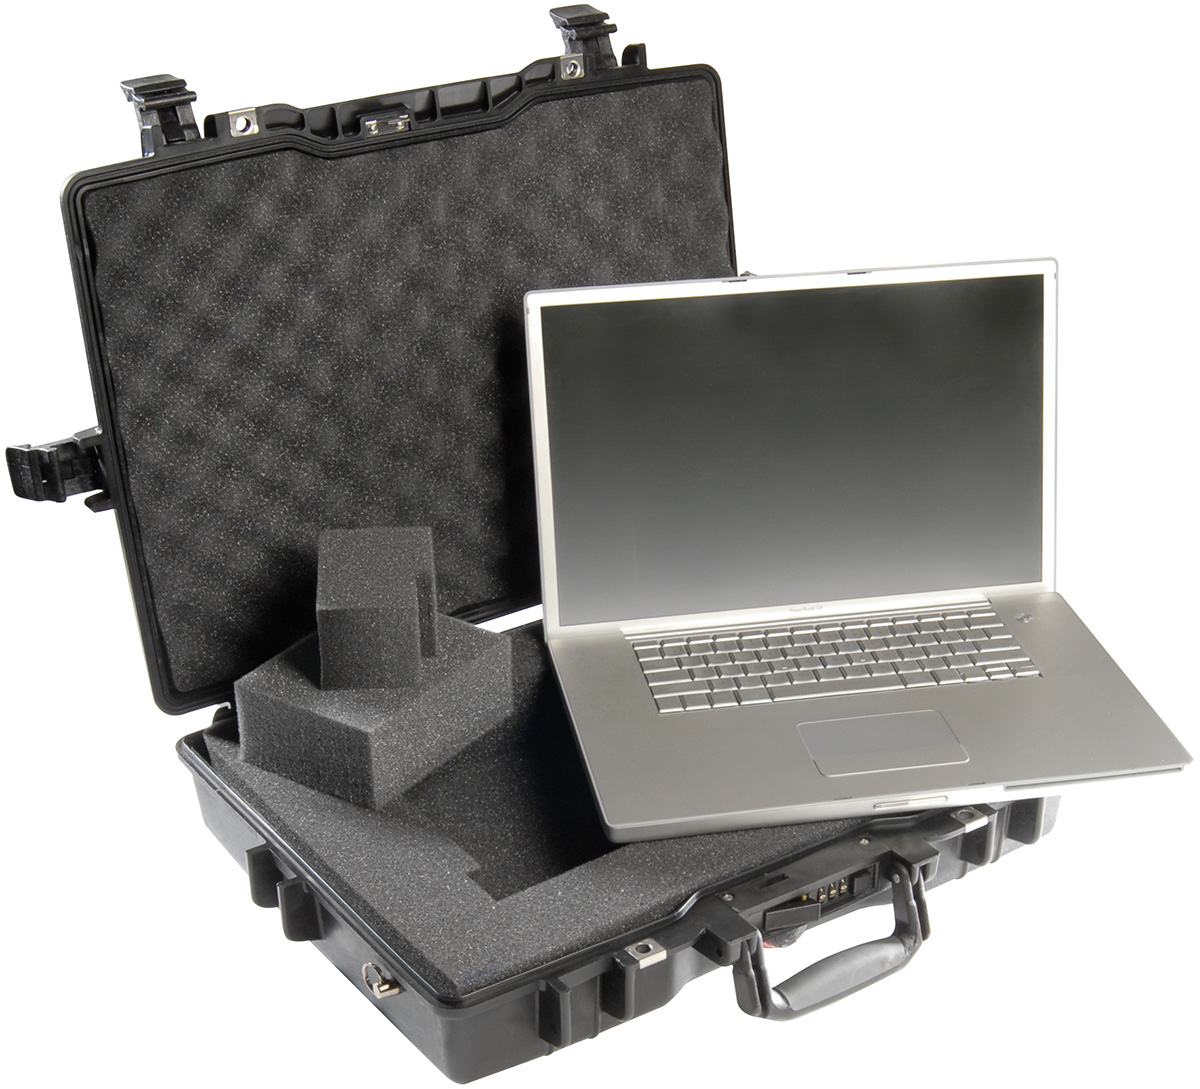 pelican peli products 1495 usa made macbook laptop hard case